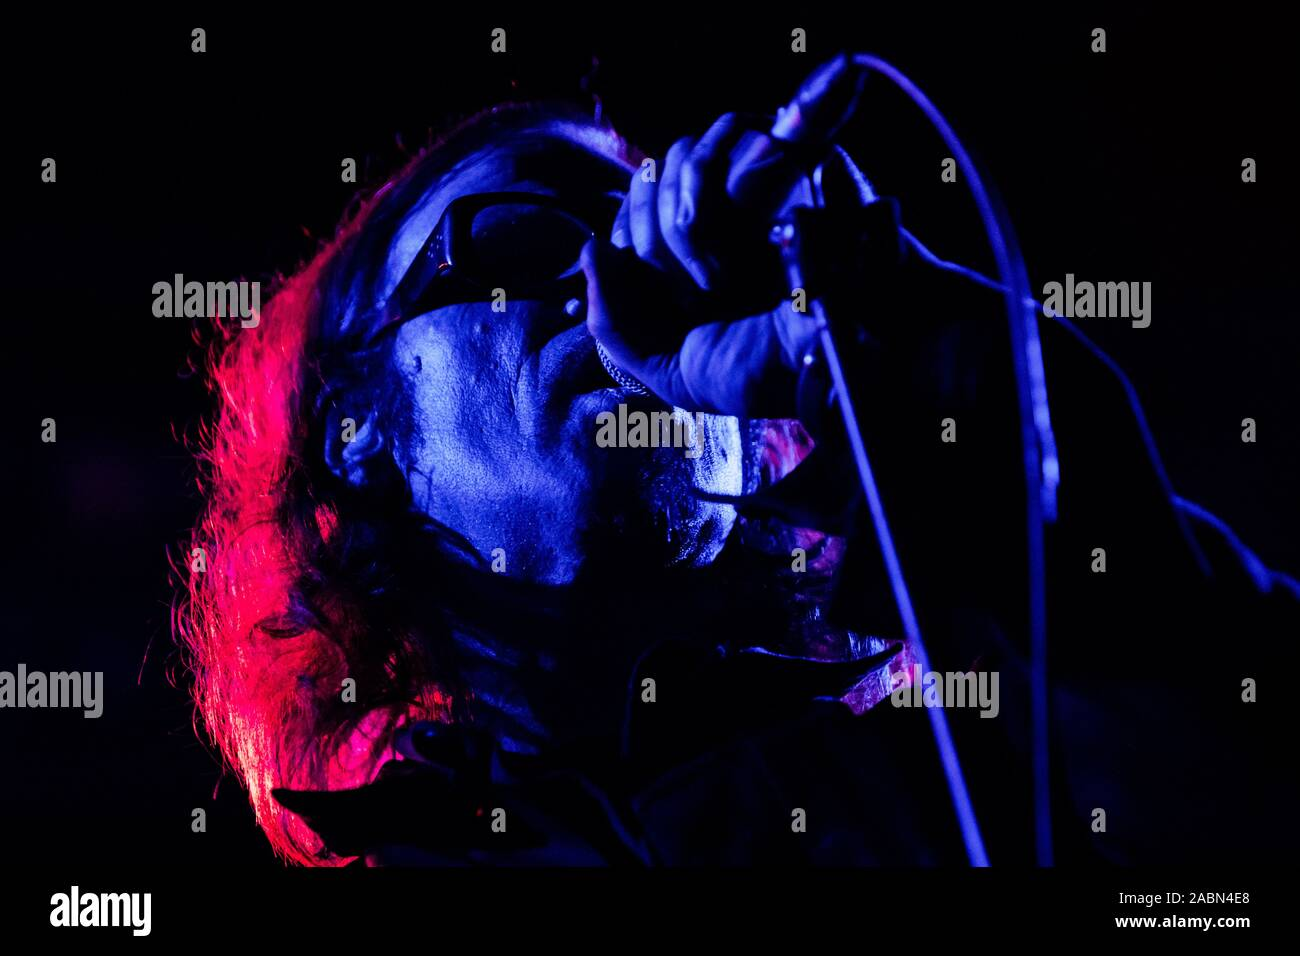 Mark Lanegan Performs Live At Fabrique On November 27 2019 In Milano Italy Mark Lanegan Is An American Alternative Rock Musician And Singer Songwriter Member Of The Psychedelic Grunge Band Screaming Trees During